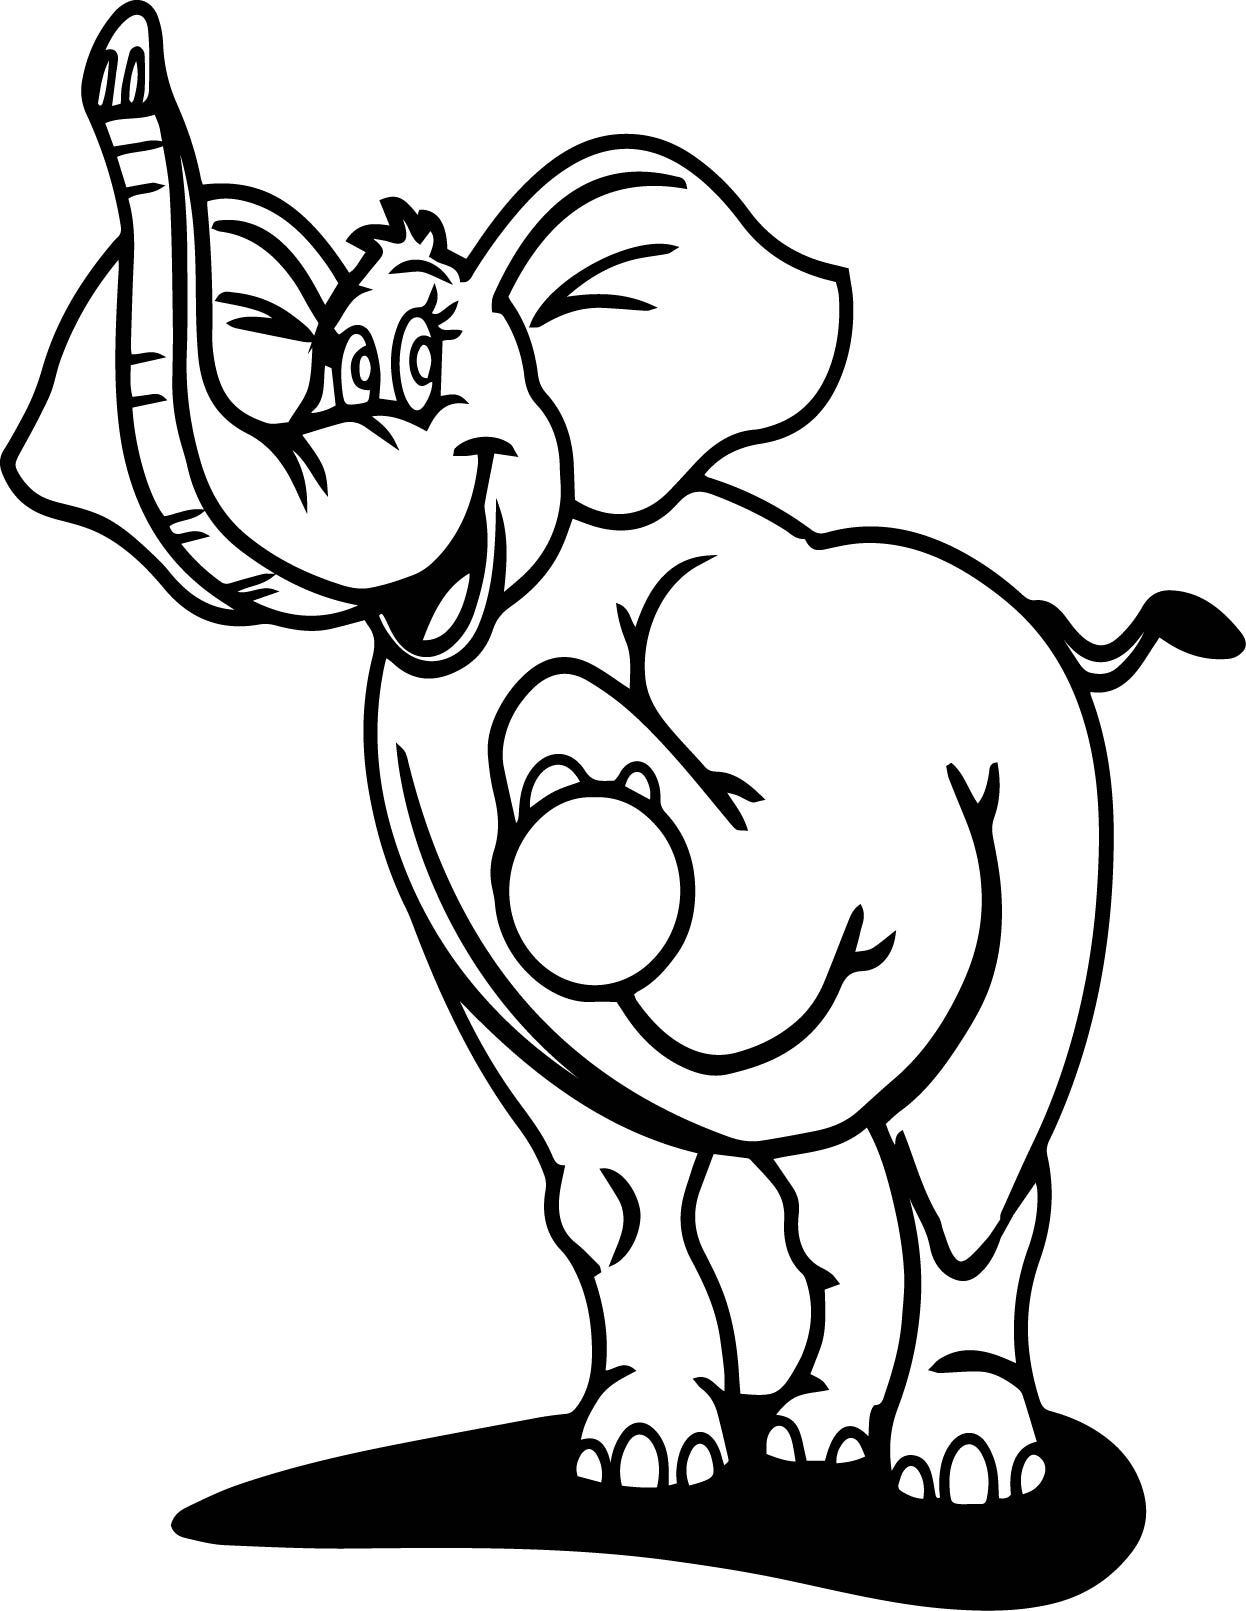 Nice perfect elephant coloring page wecoloringpage pinterest